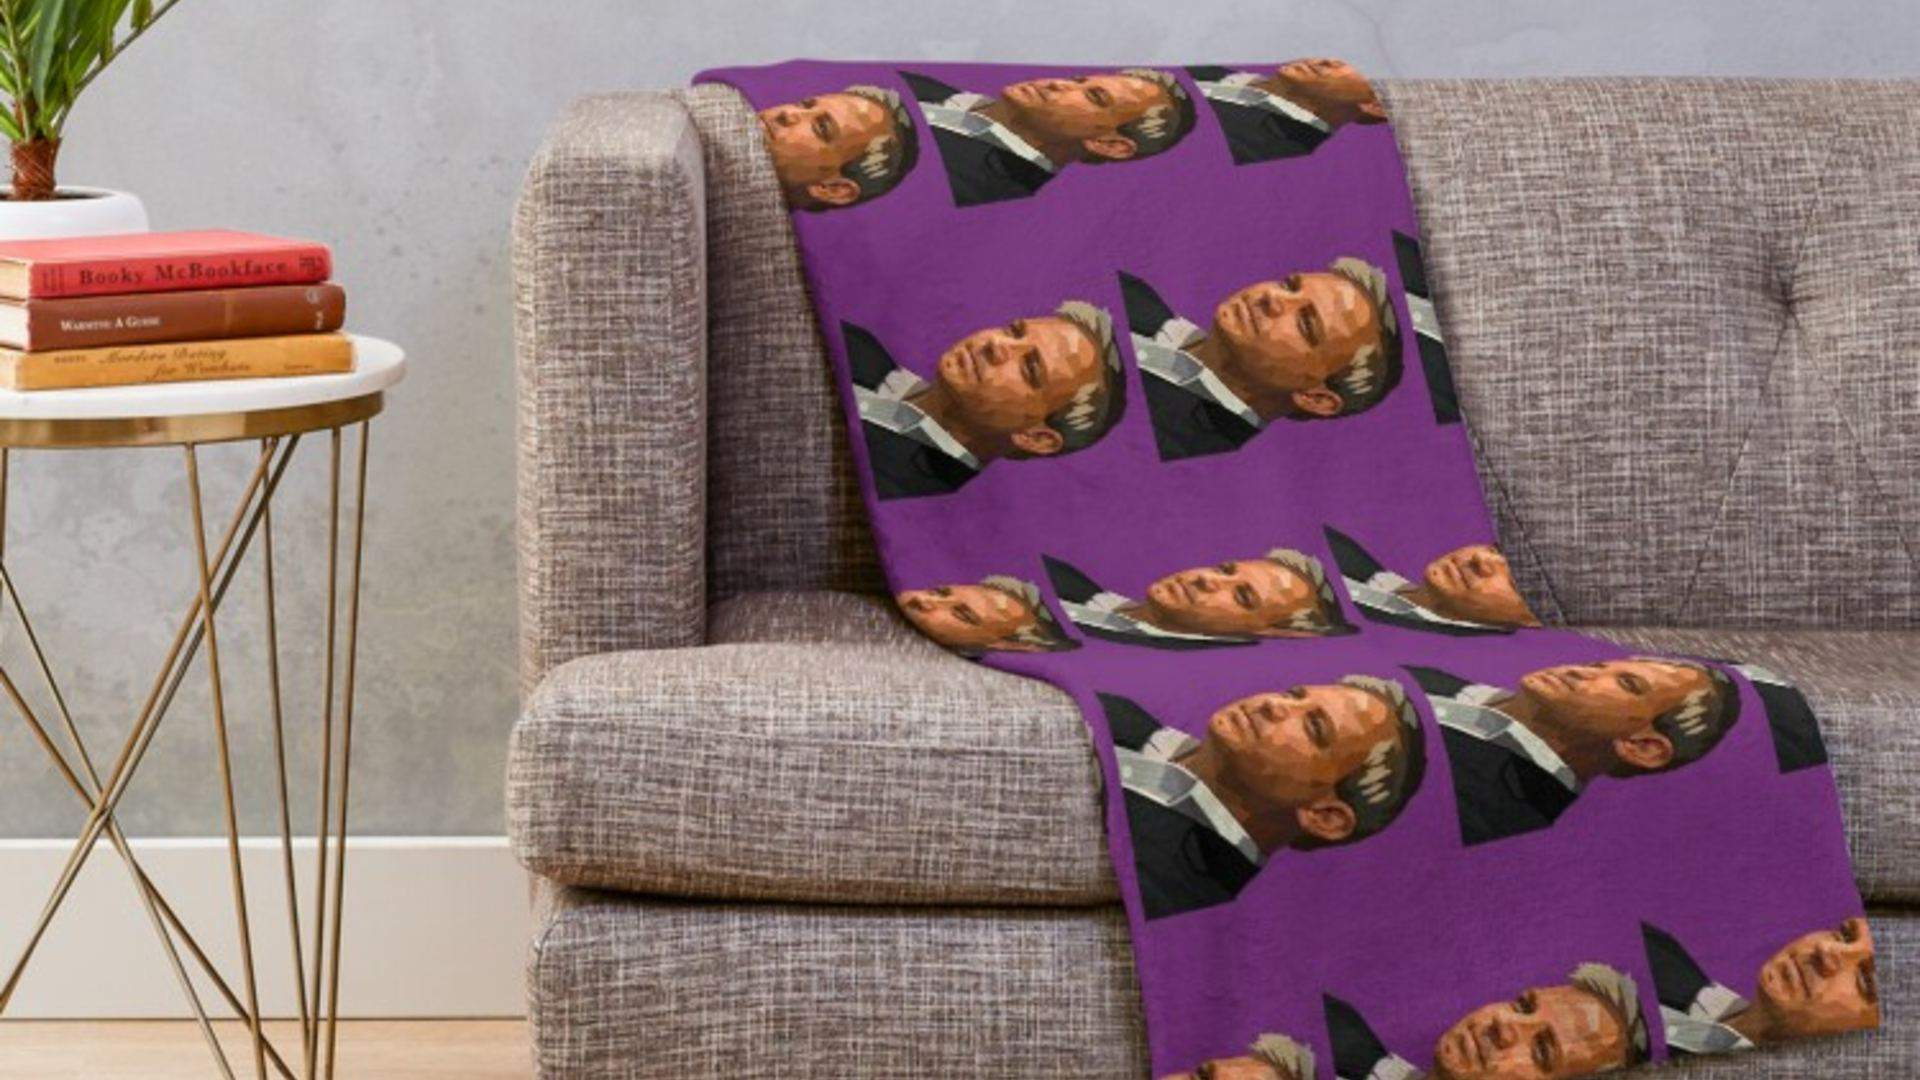 You Can Now Buy Pillows and Blankets Emblazoned with Chief Health Officer Brett Sutton's Face